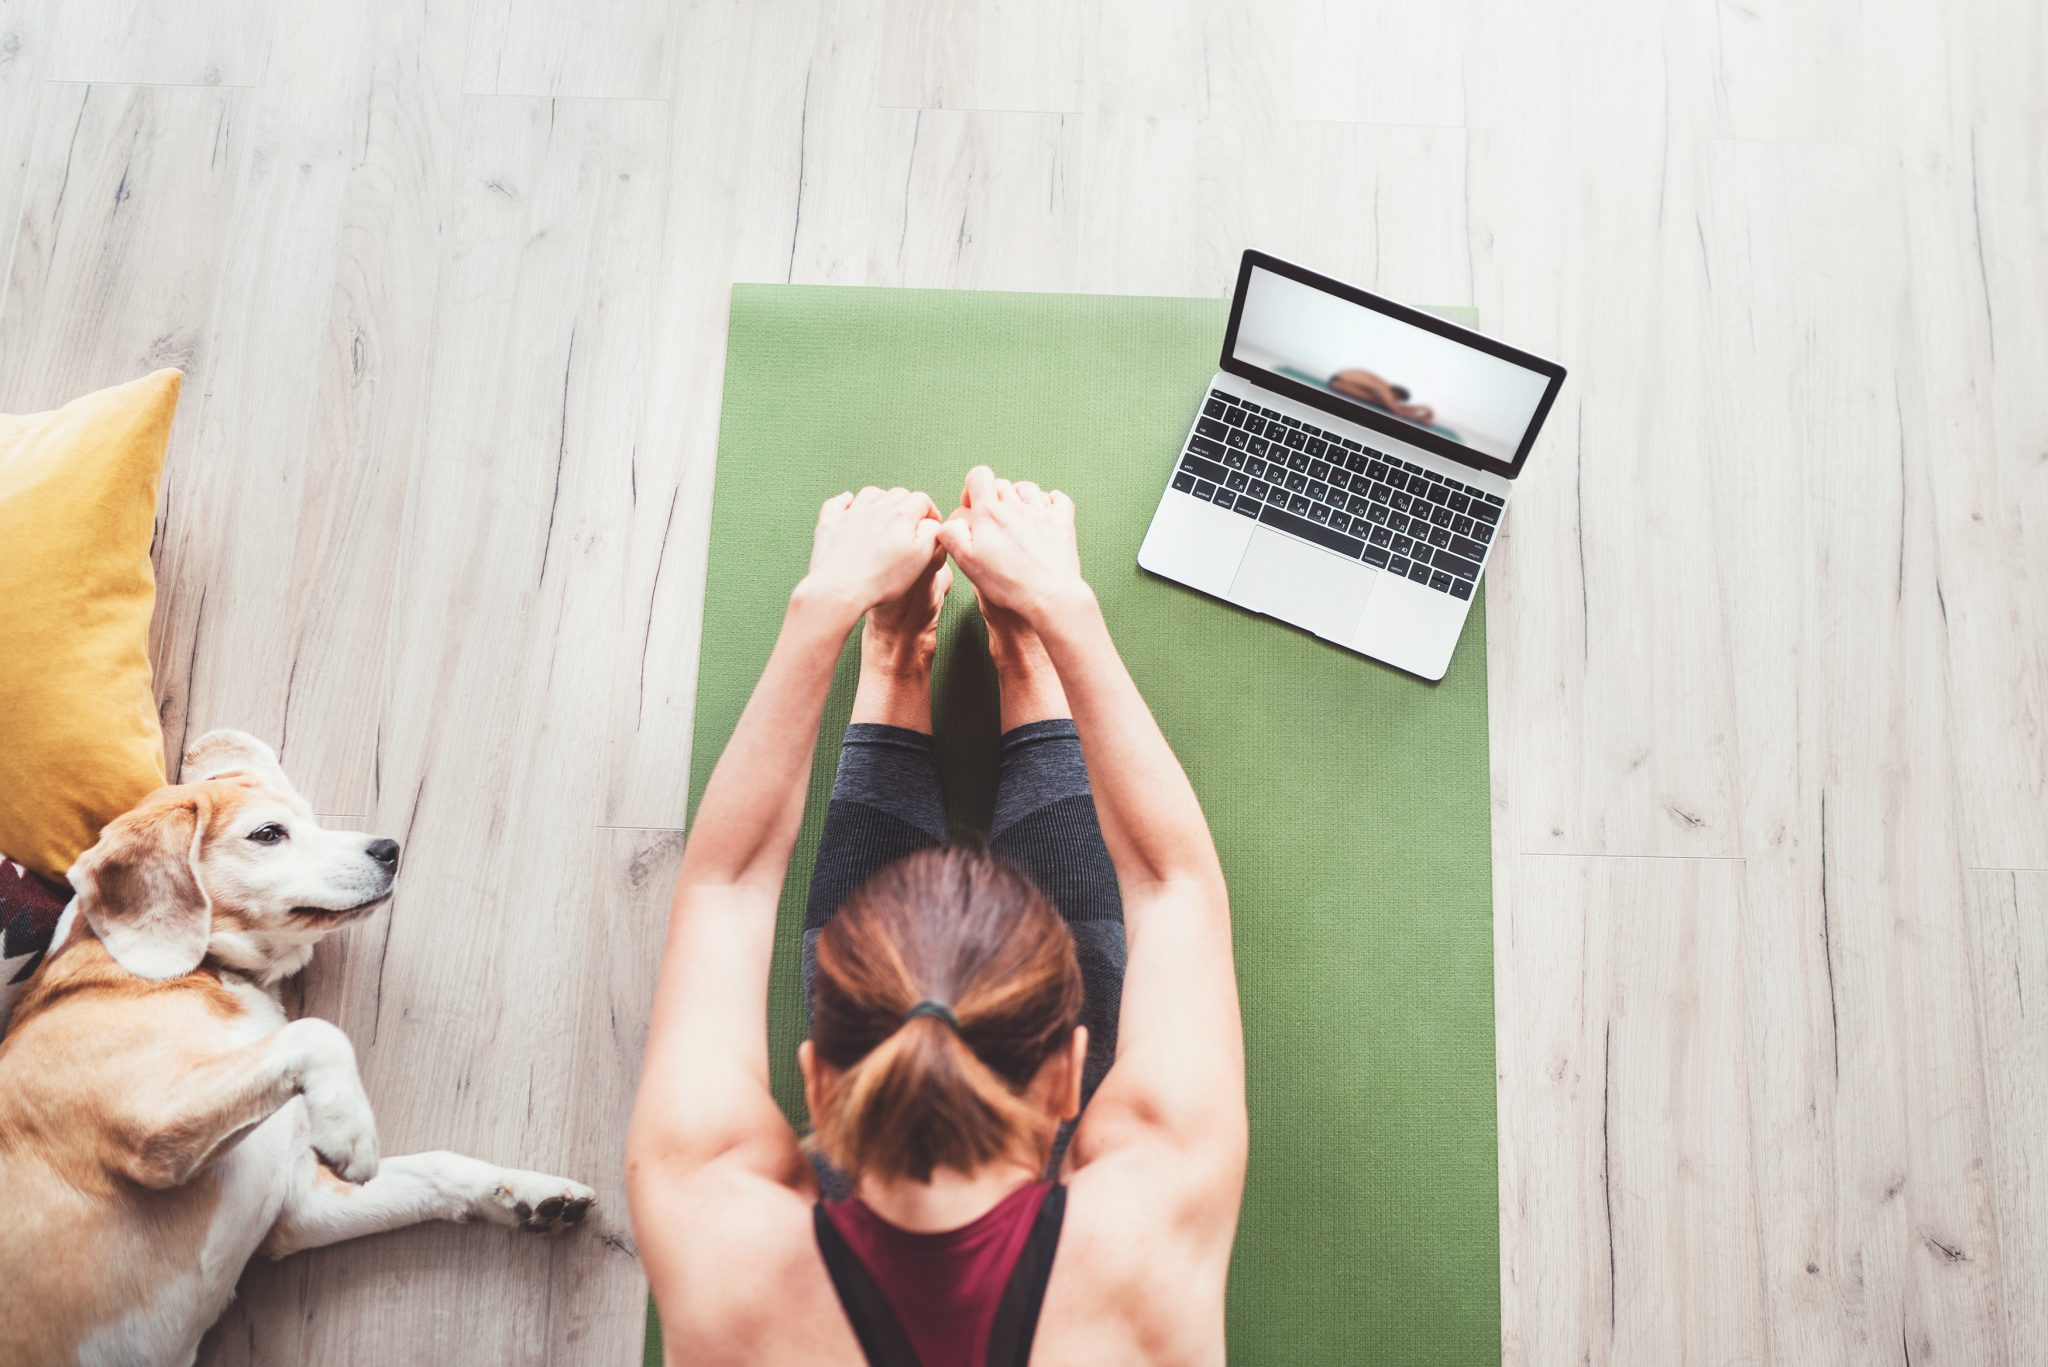 Woman practicing yoga on laptop with dog